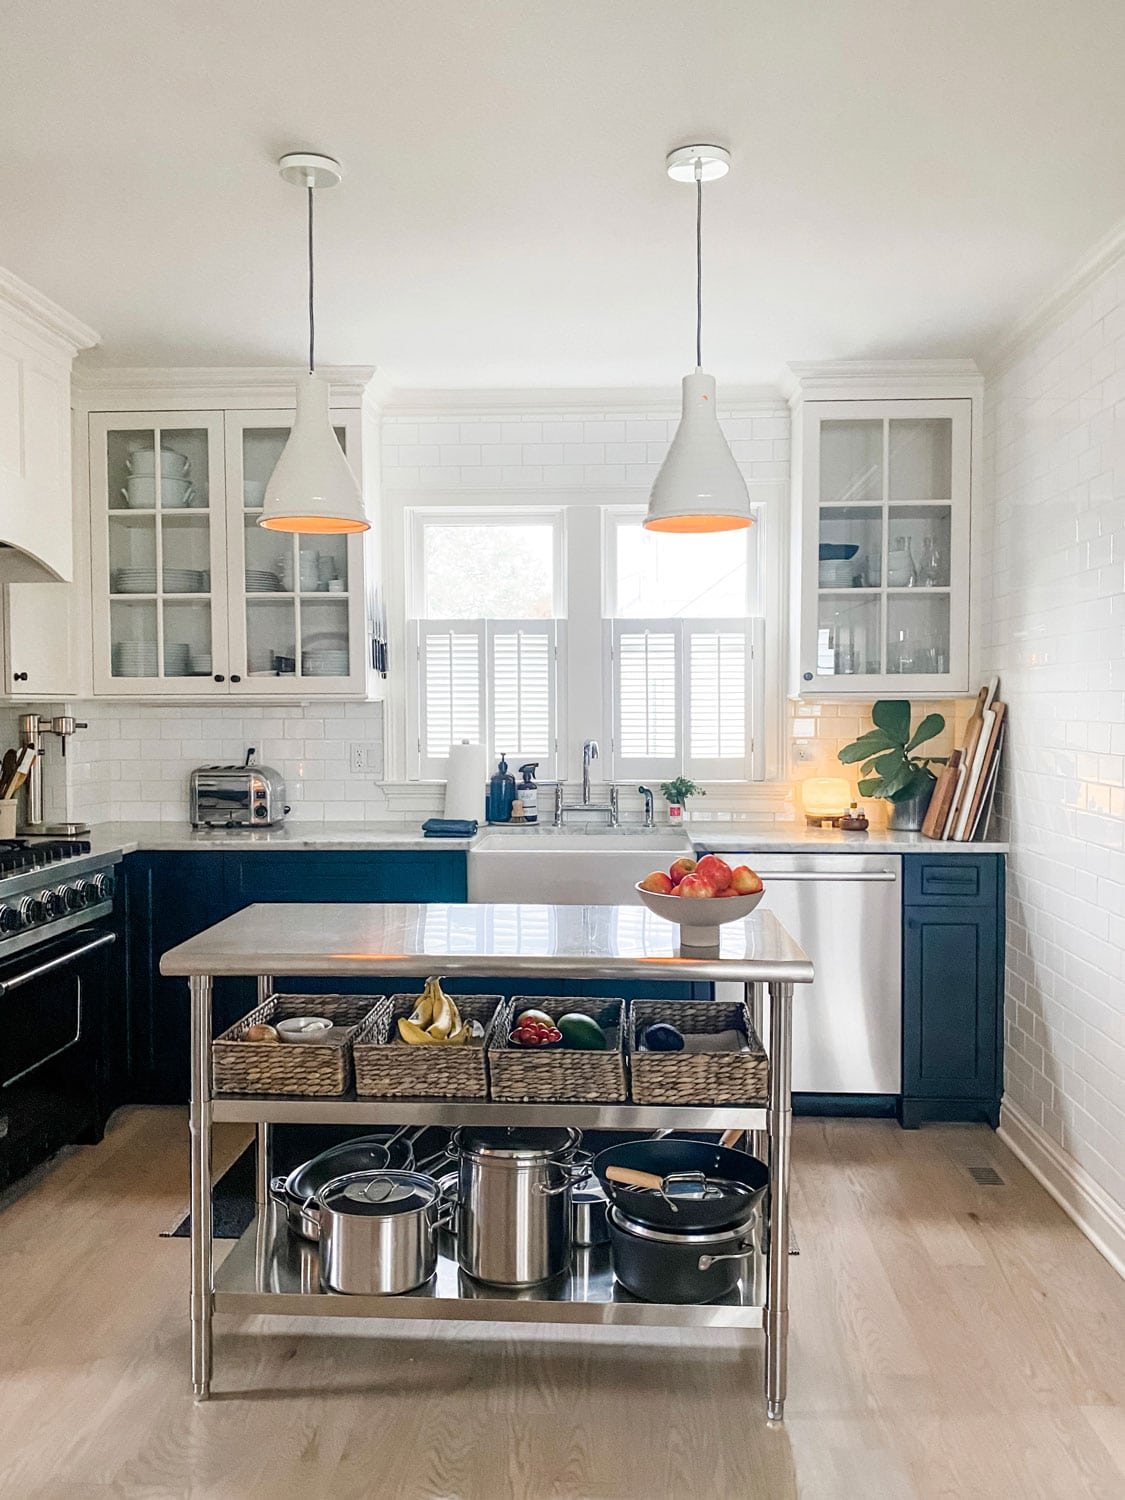 Lifestyle Blogger Annie Diamond shares her kitchen remodel with her stainless kitchen island from Amazon